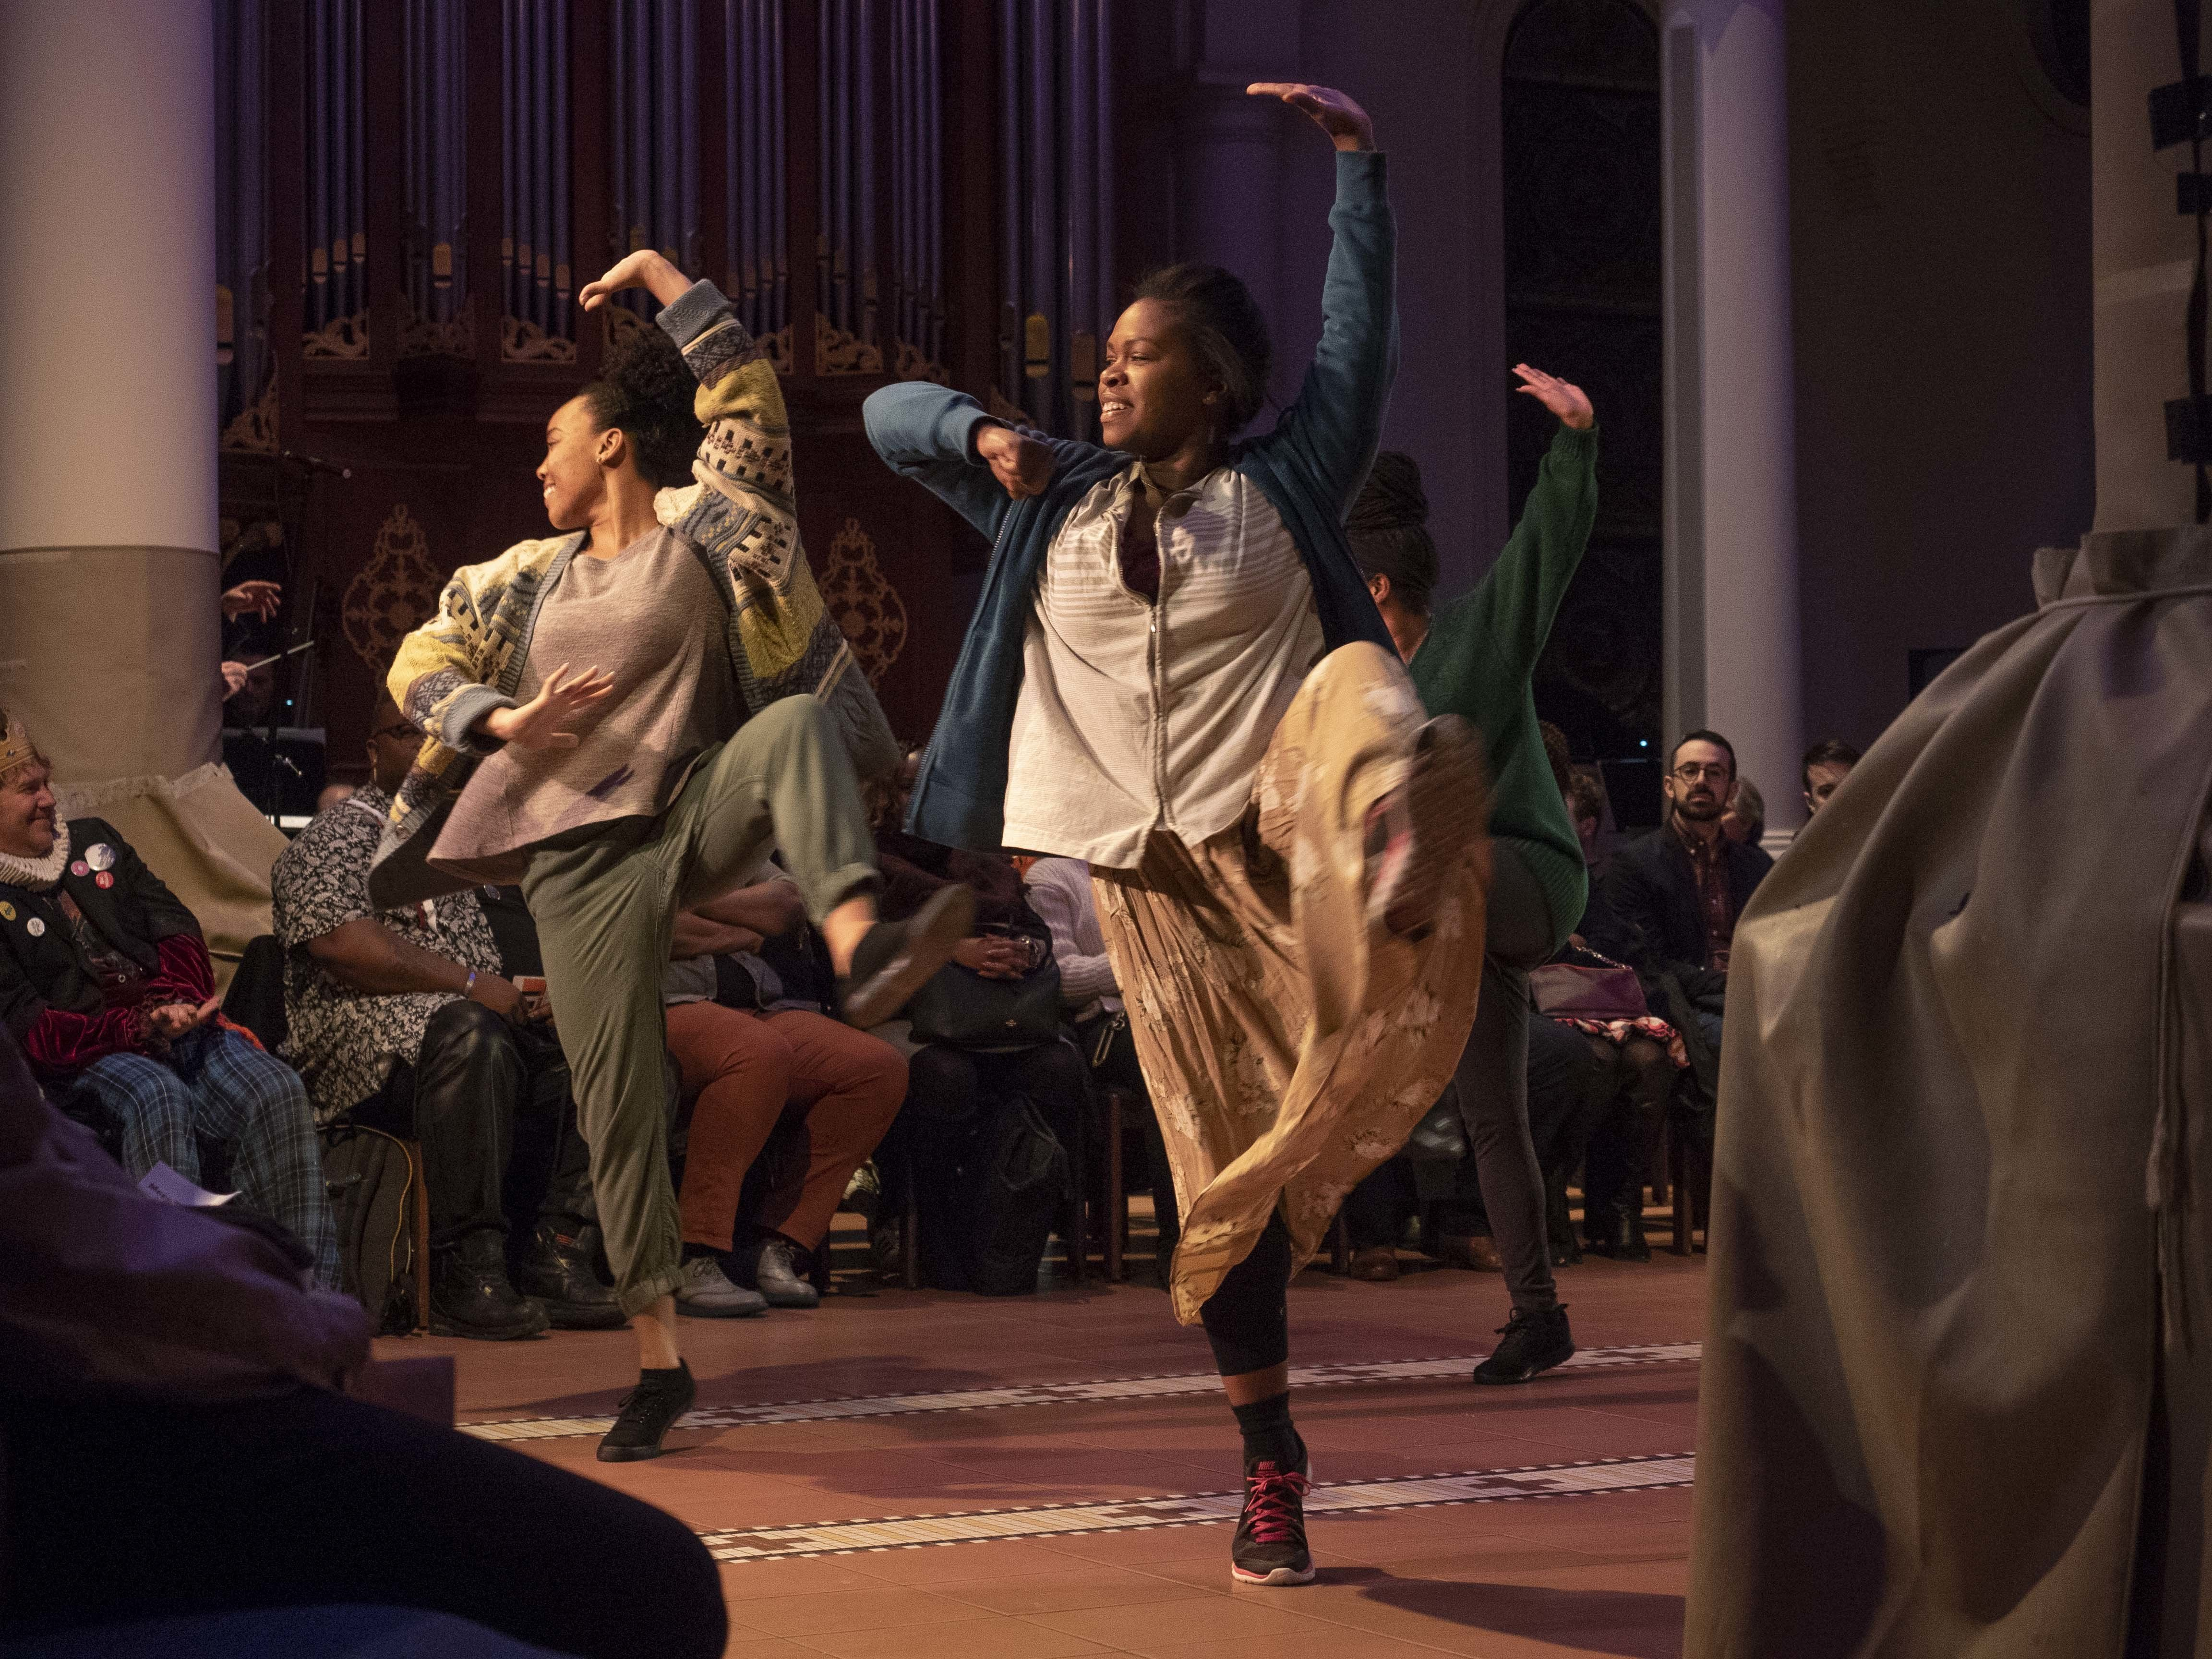 What It Takes to Choreograph an Opera in a Soup Kitchen